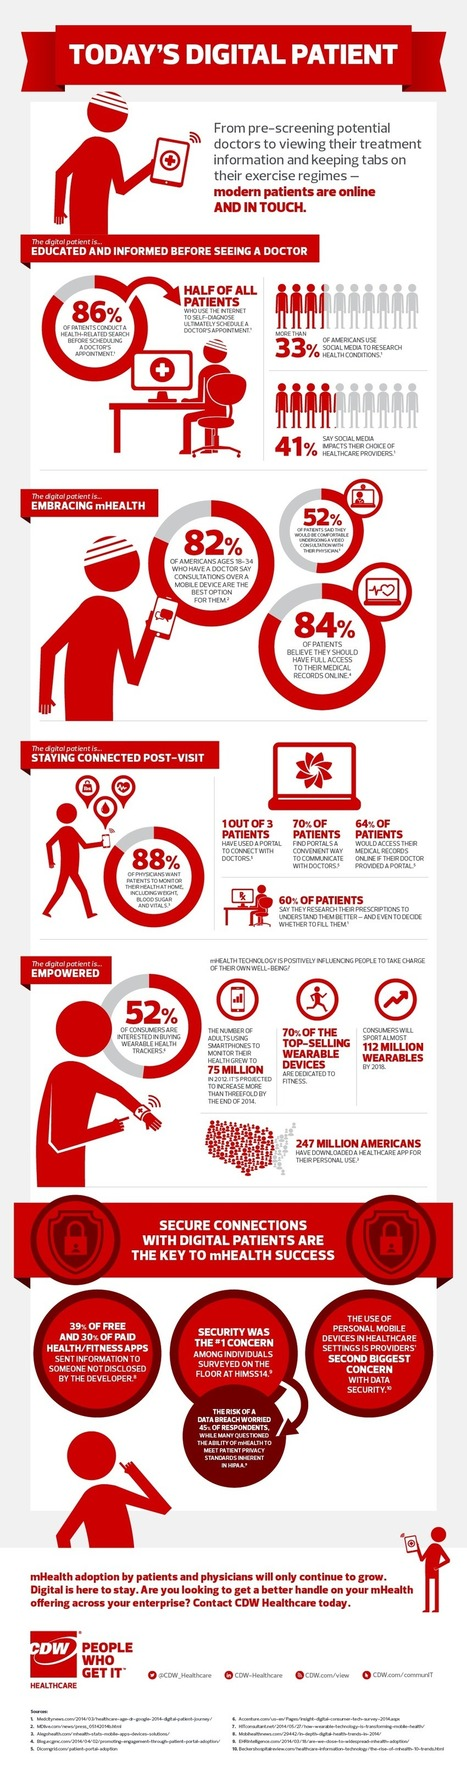 Infographic: Rise of the Digital Patient | Patient Centered Healthcare | Scoop.it